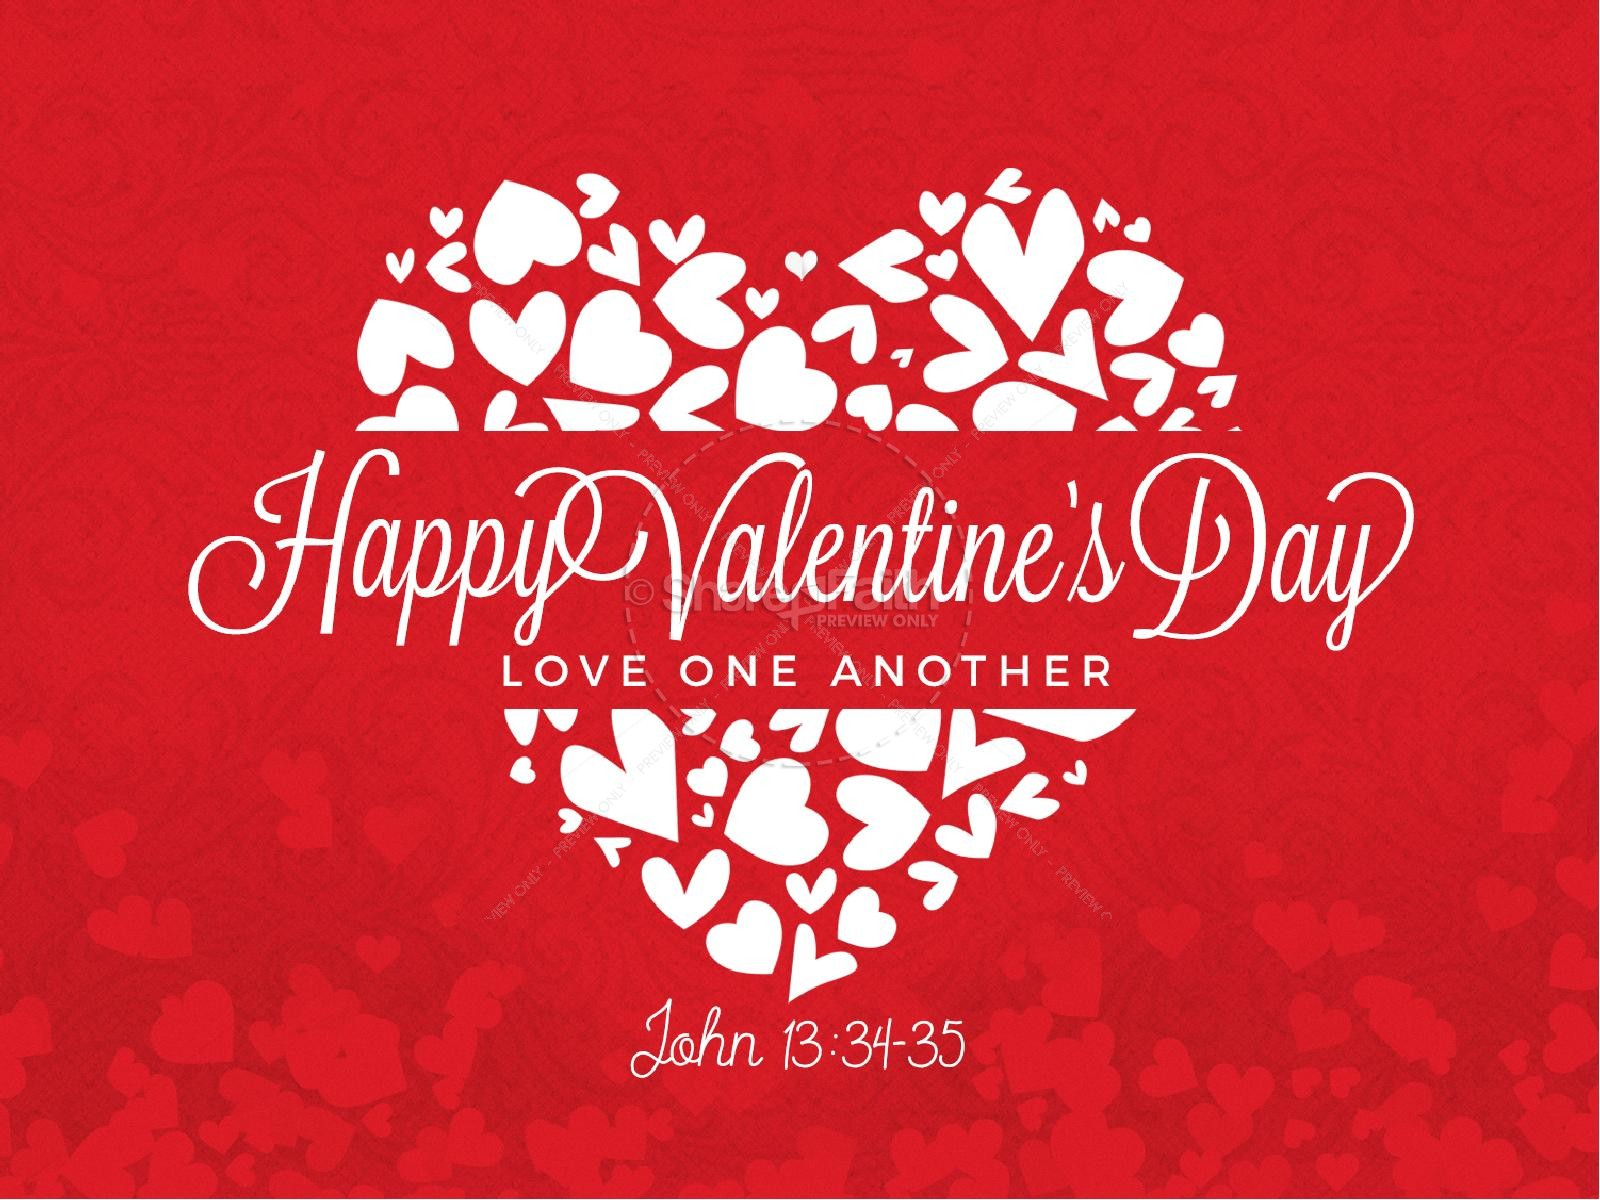 Happy Valentine's Day Love One Another Church PowerPoint